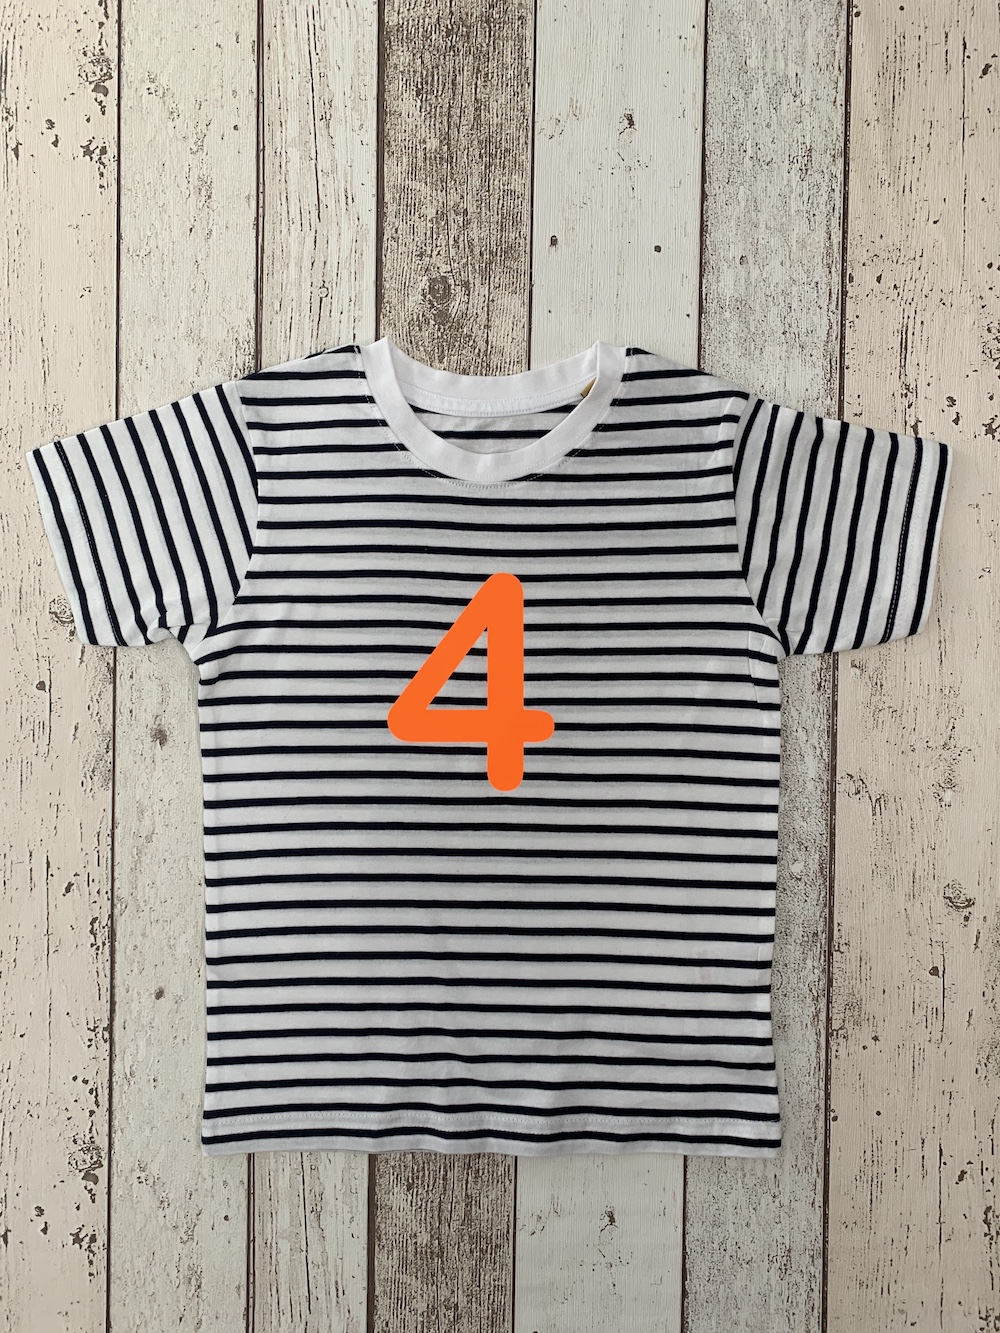 Number 4 Stripe Birthday T-shirt